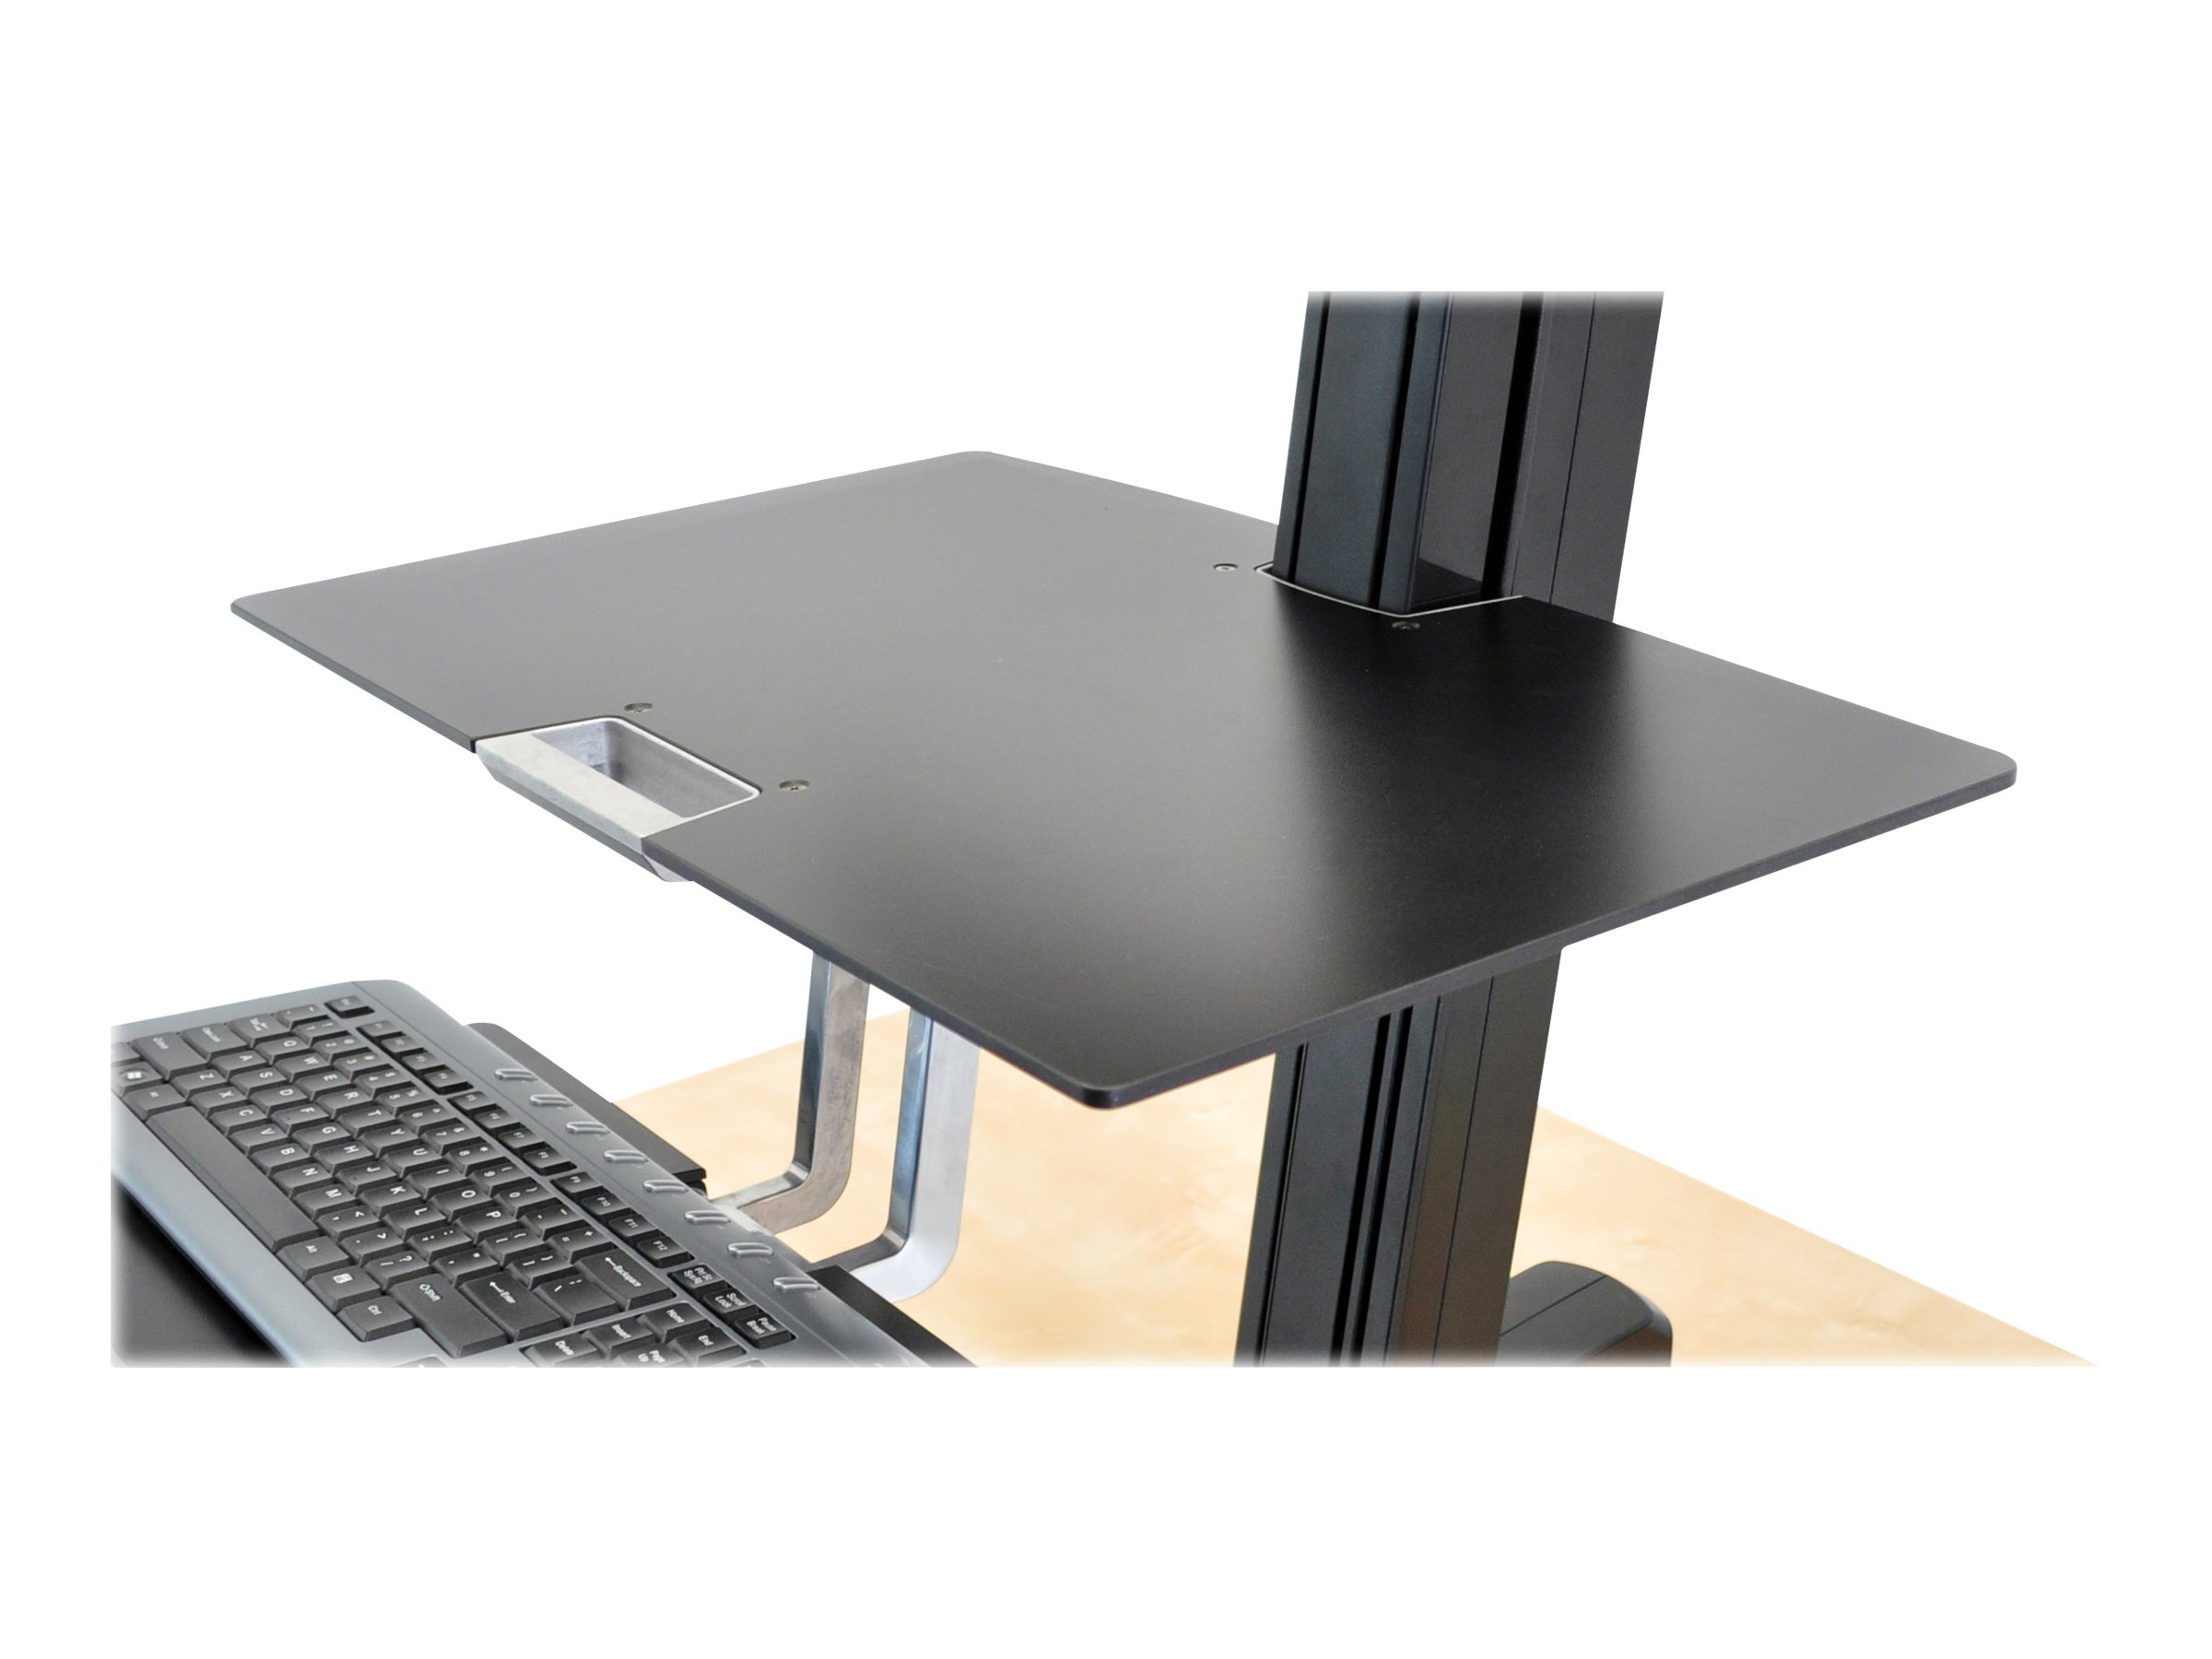 Ergotron Worksurface for WorkFit-S, 97-581-019